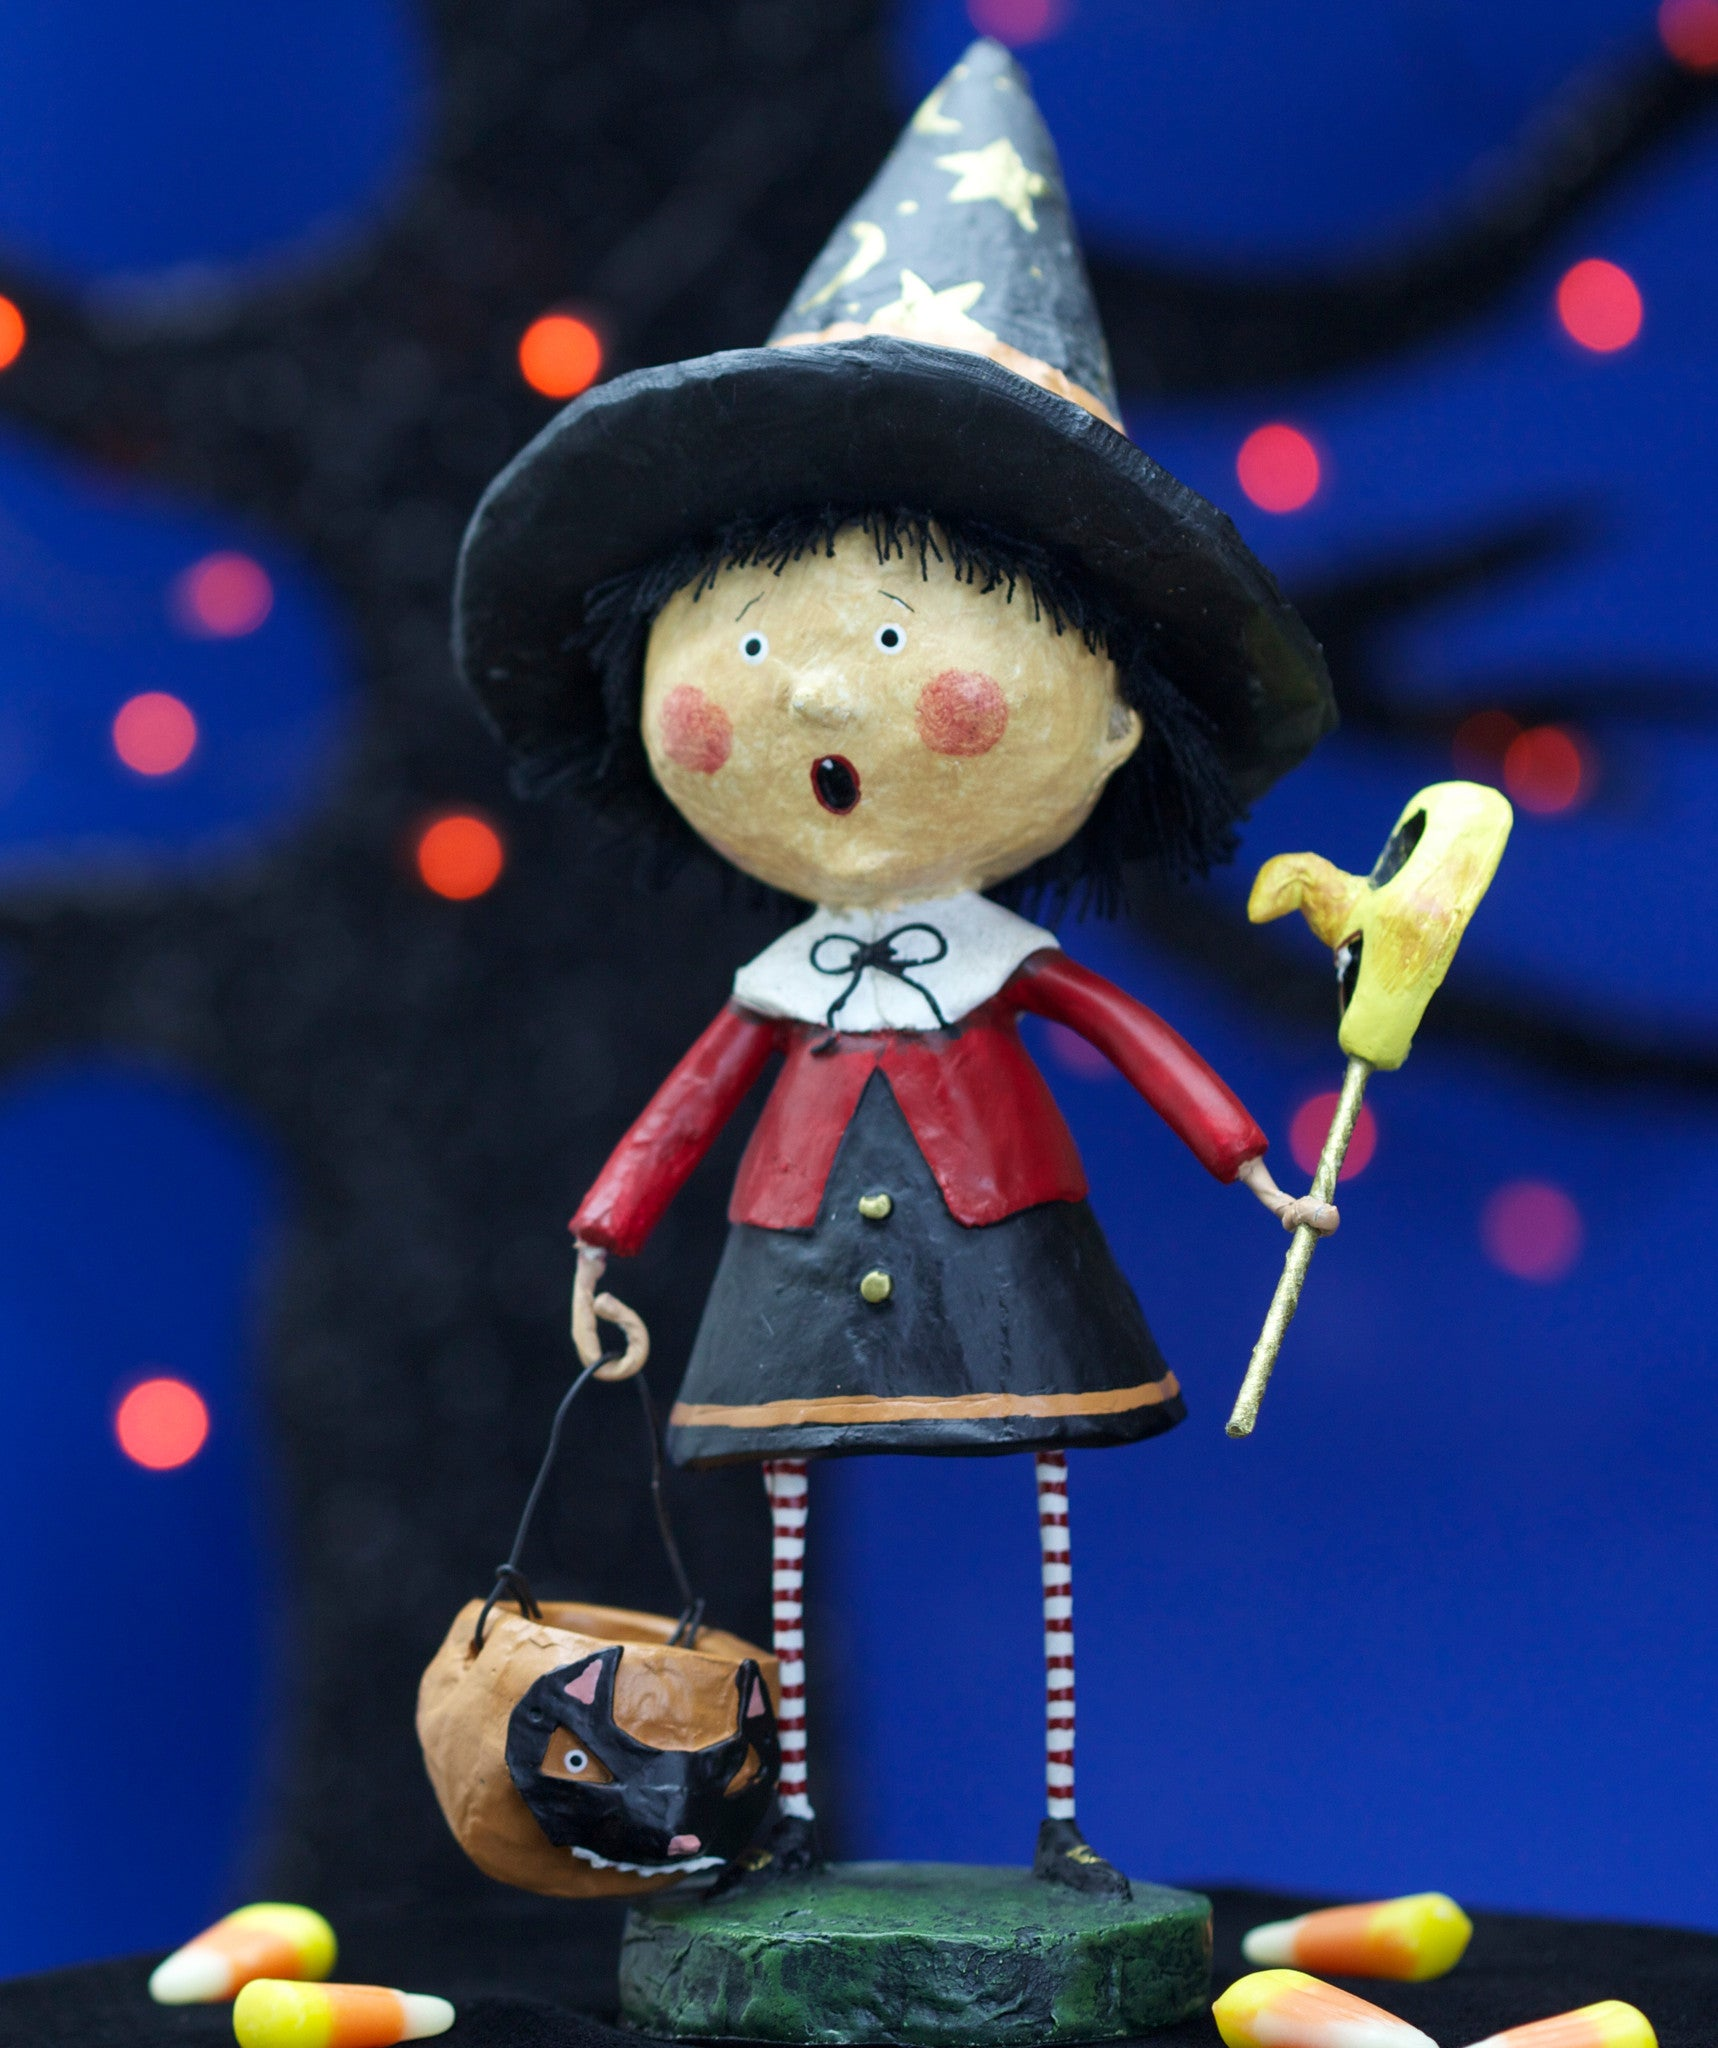 Trixie Witch - Lori Mitchell Halloween Figurine